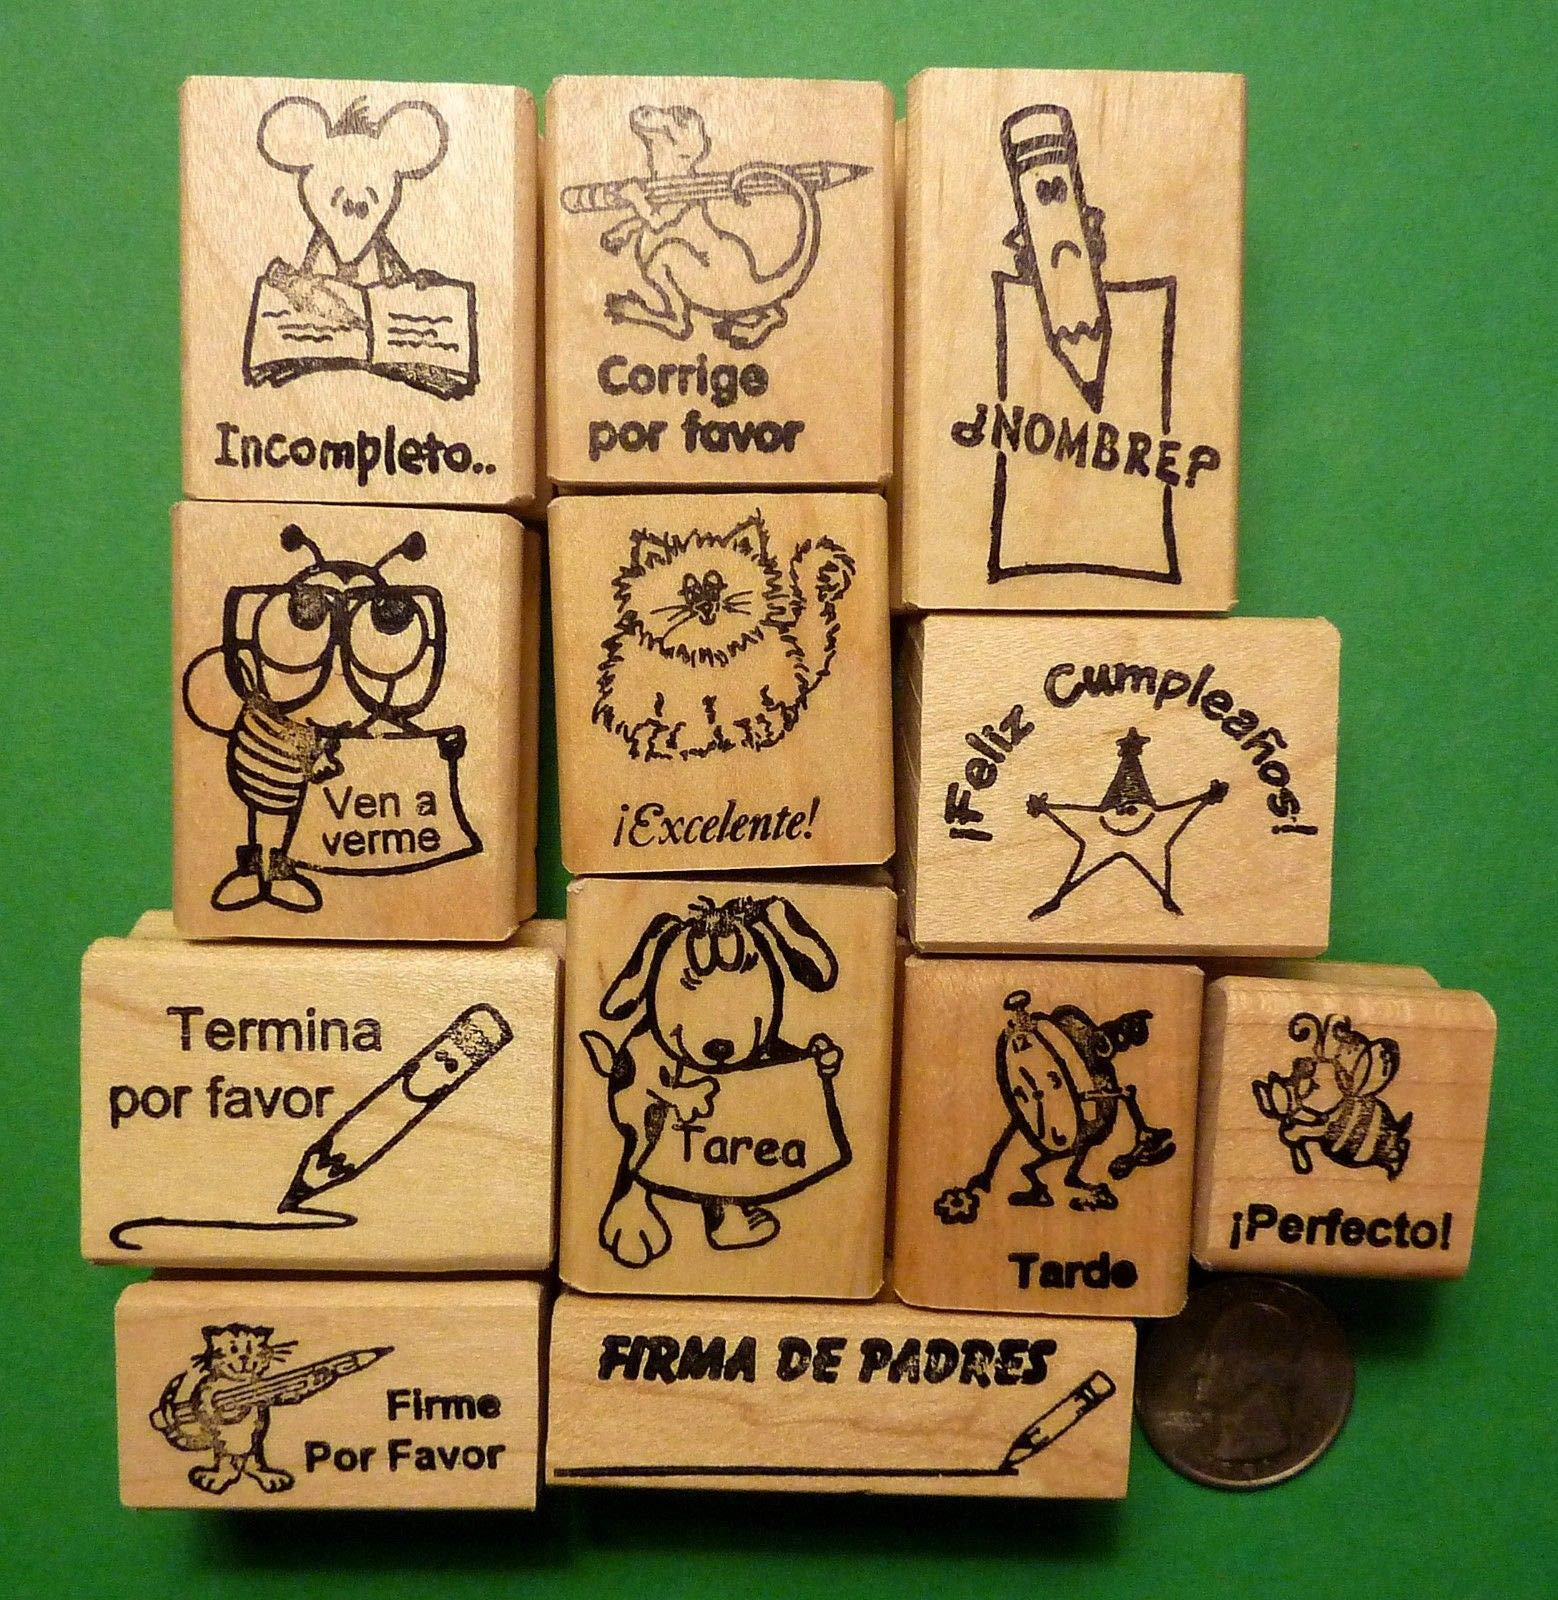 Quality Custom Rubber Stamps Teacher Spanish-Only Rubber Stamp Assortment of 12, Wood Mounted Carved Wooden Stamps